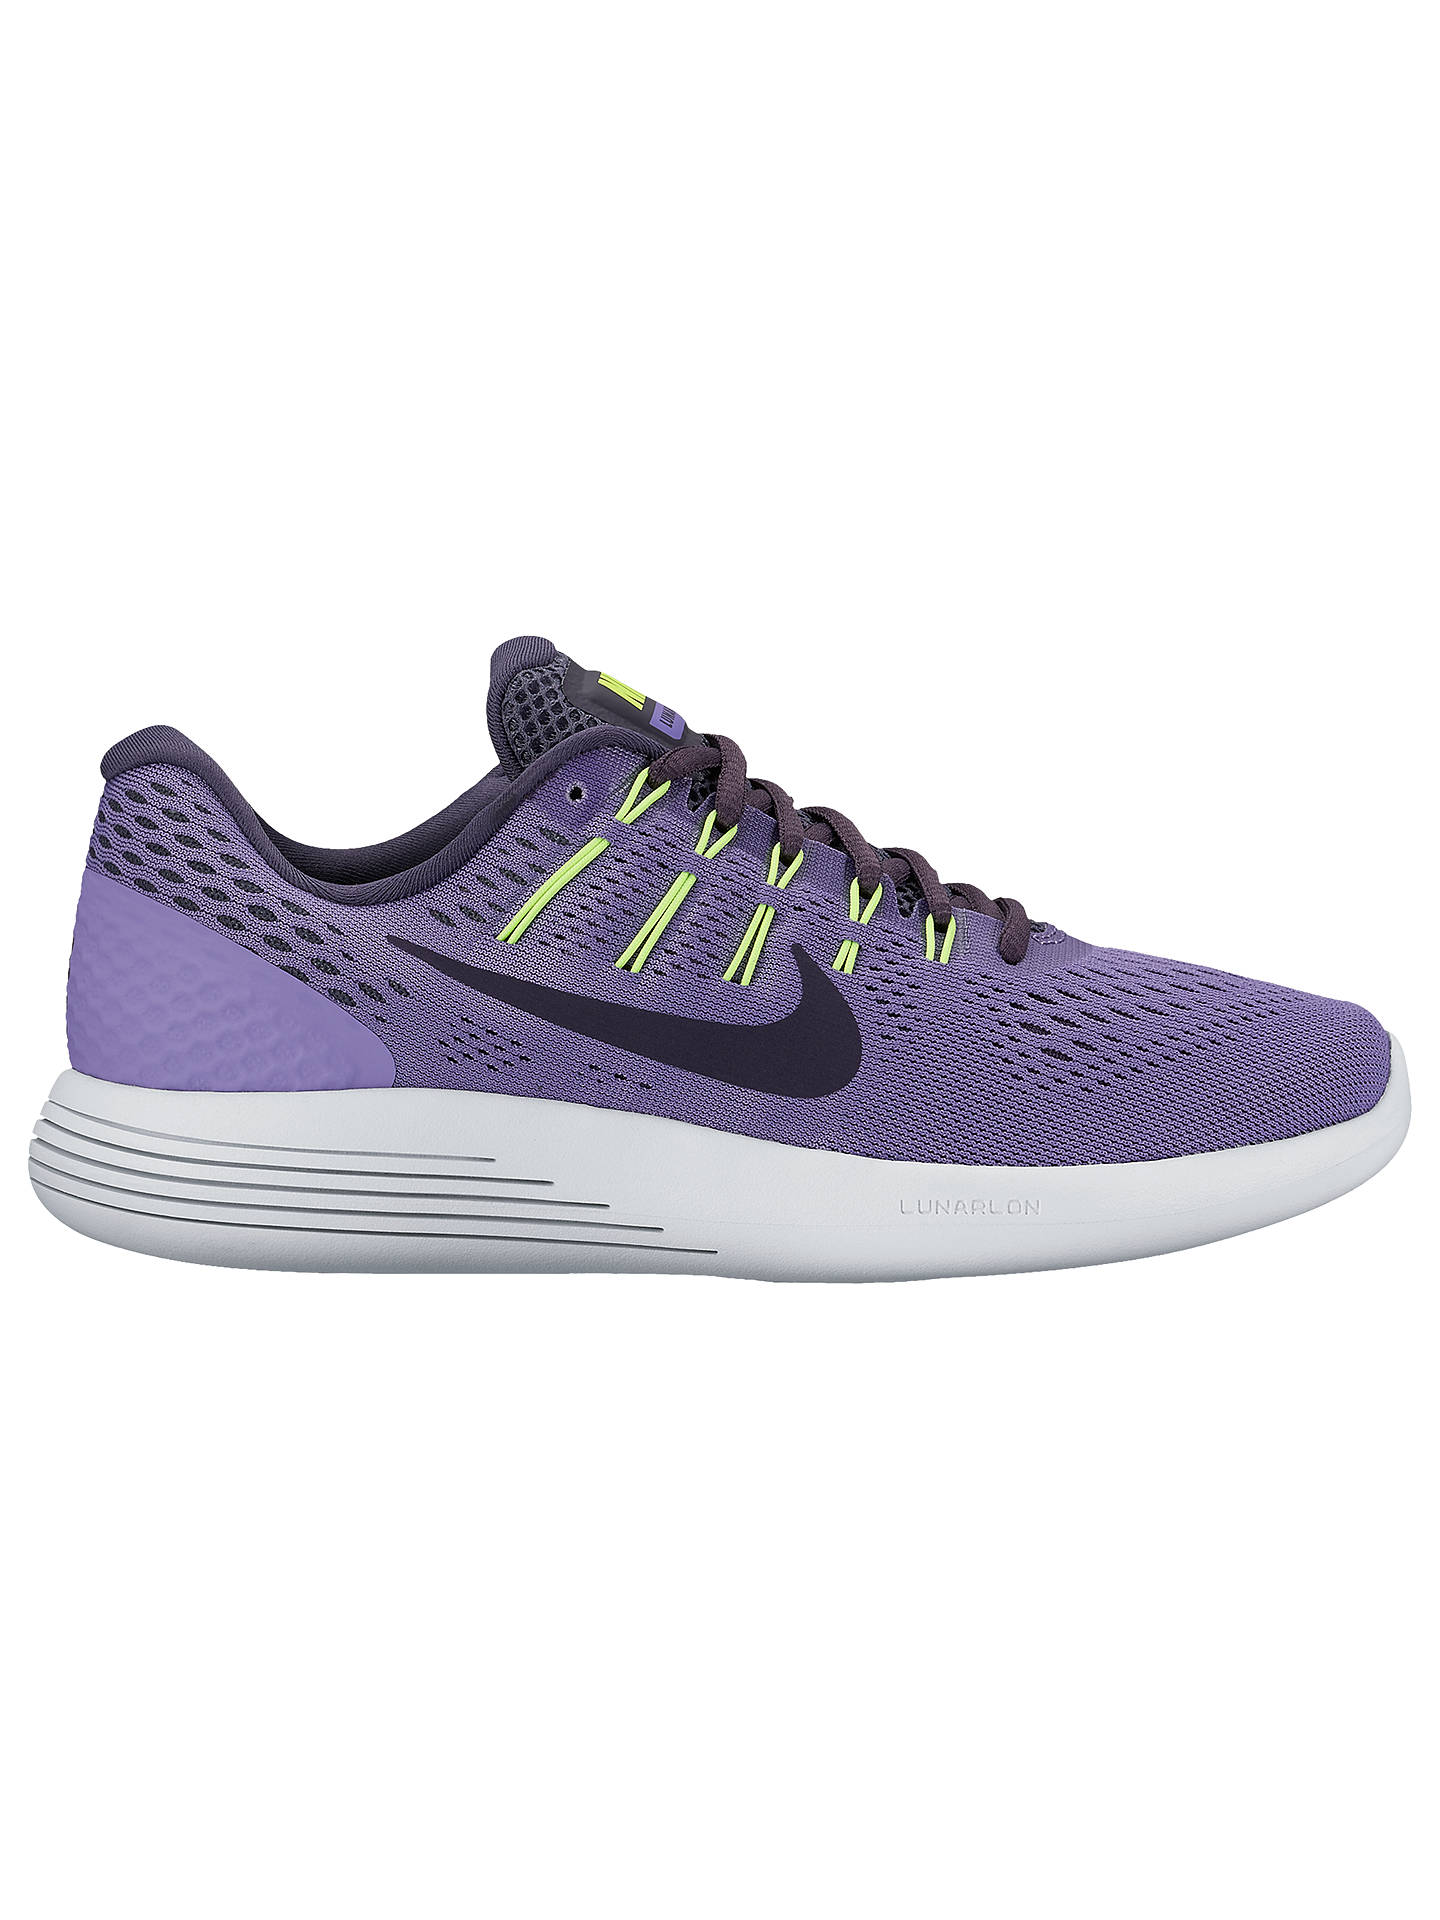 wholesale dealer 9c553 a86e2 Nike LunarGlide 8 Women's Running Shoes at John Lewis & Partners